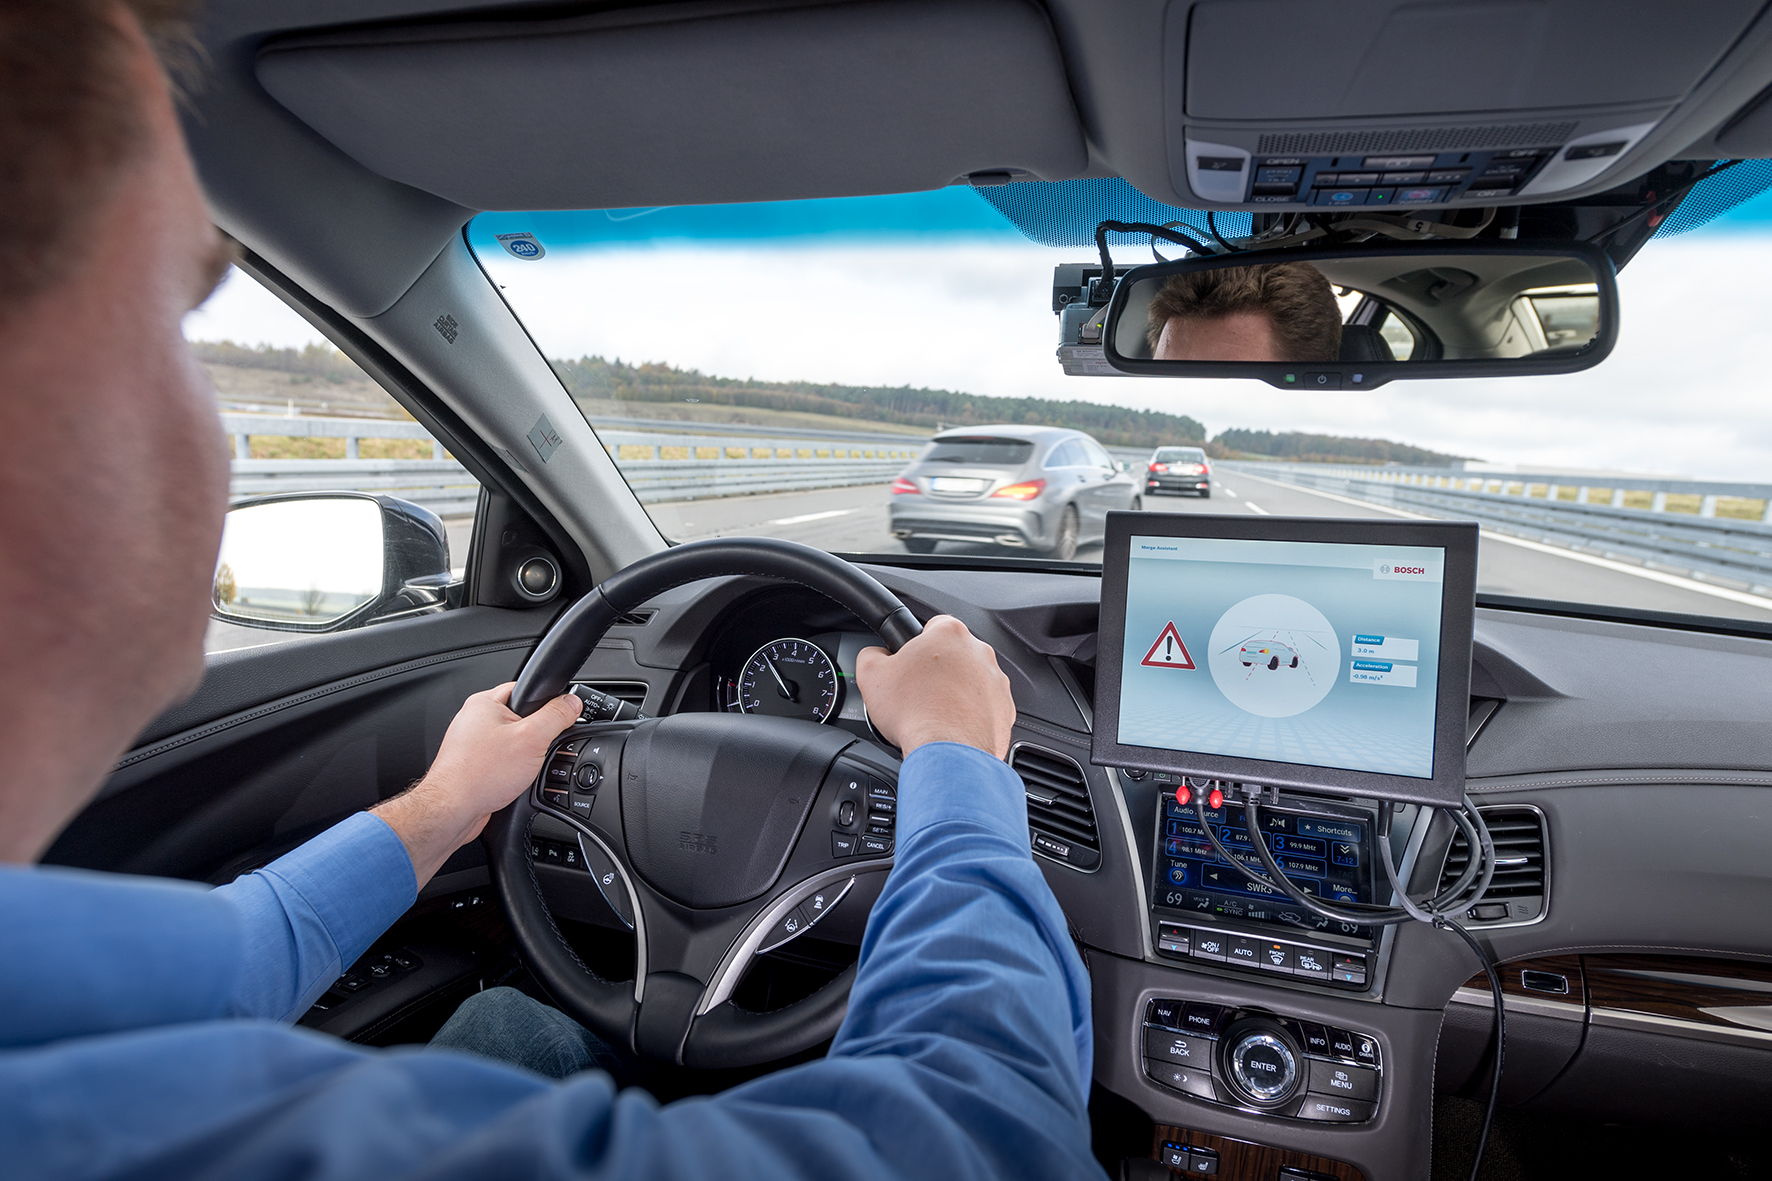 Successful tests: Cellular-V2X improves driver assistance systems